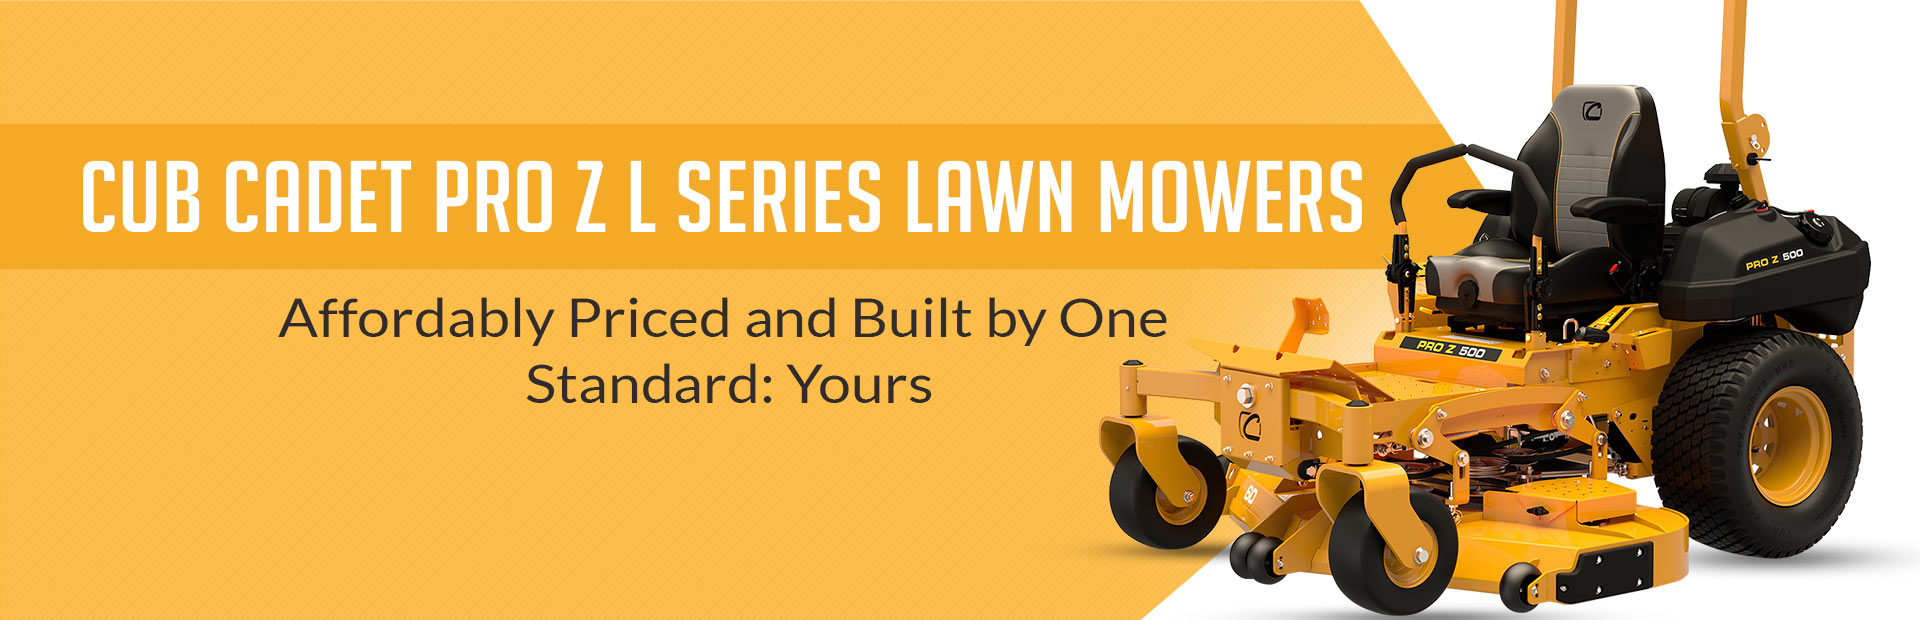 Cub Cadet Pro Z L Series Lawn Mowers: Click here to view the models.